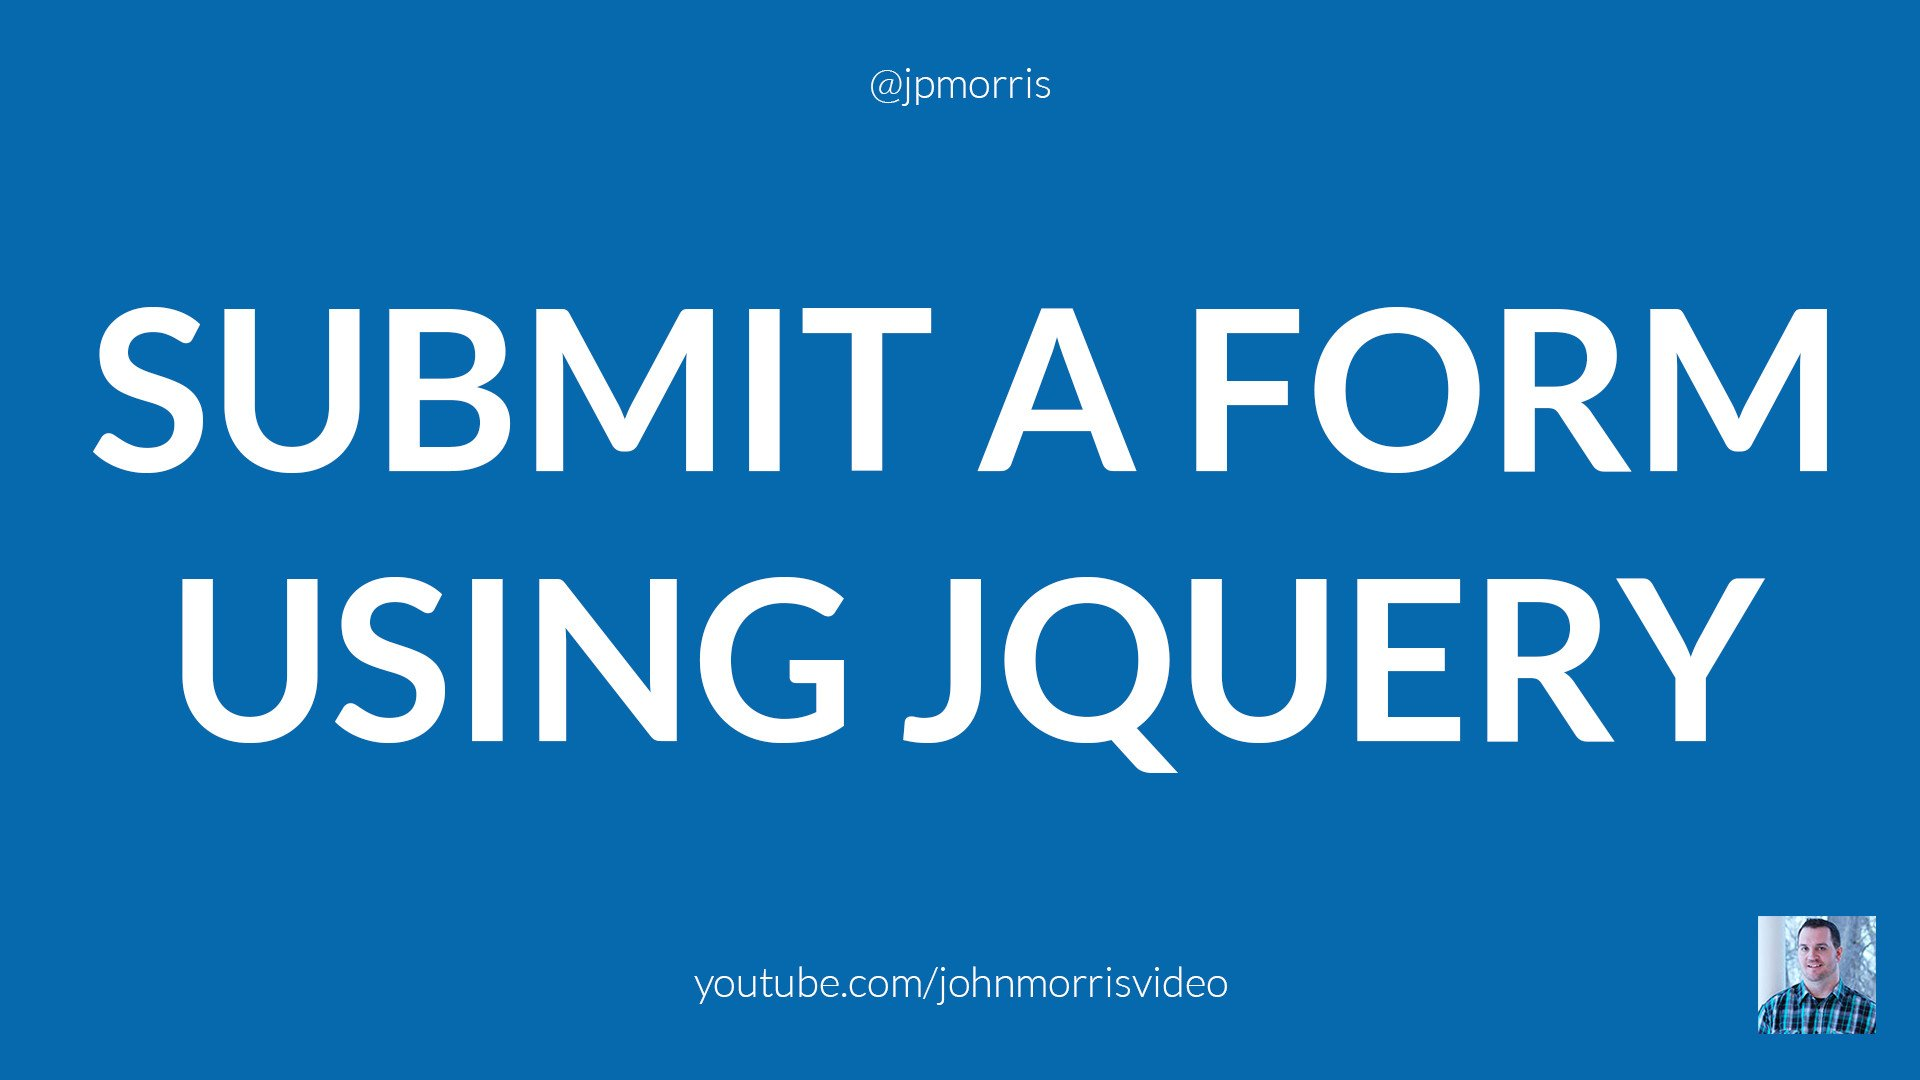 jQuery Tutorial: Submit a Form and Post Data Using jQuery